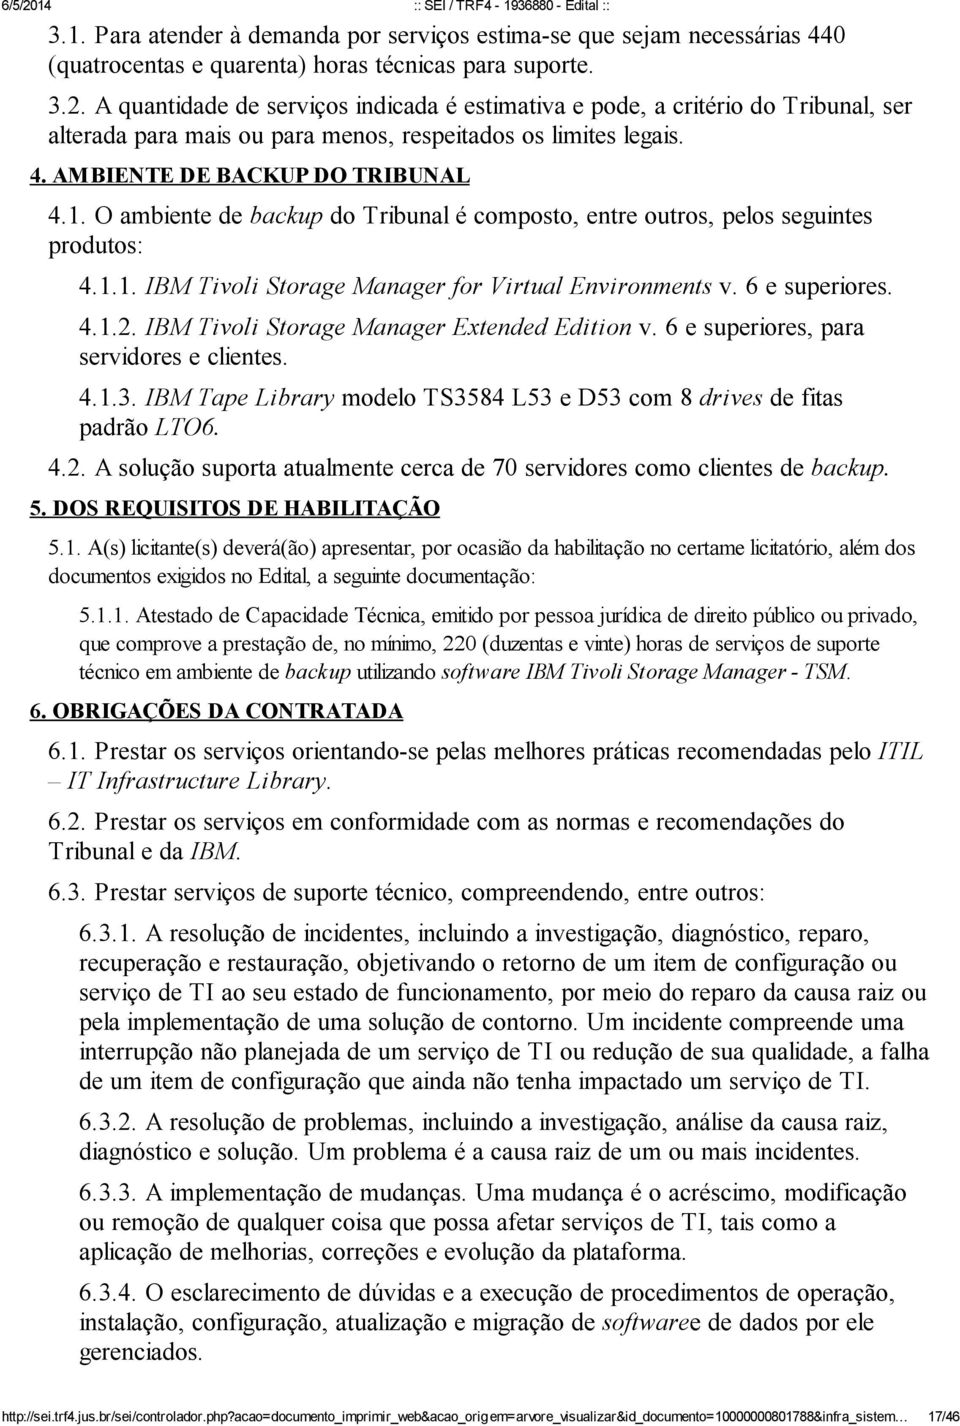 O ambiente de backup do Tribunal é composto, entre outros, pelos seguintes produtos: 4.1.1. IBM Tivoli Storage Manager for Virtual Environments v. 6 e superiores. 4.1.2.